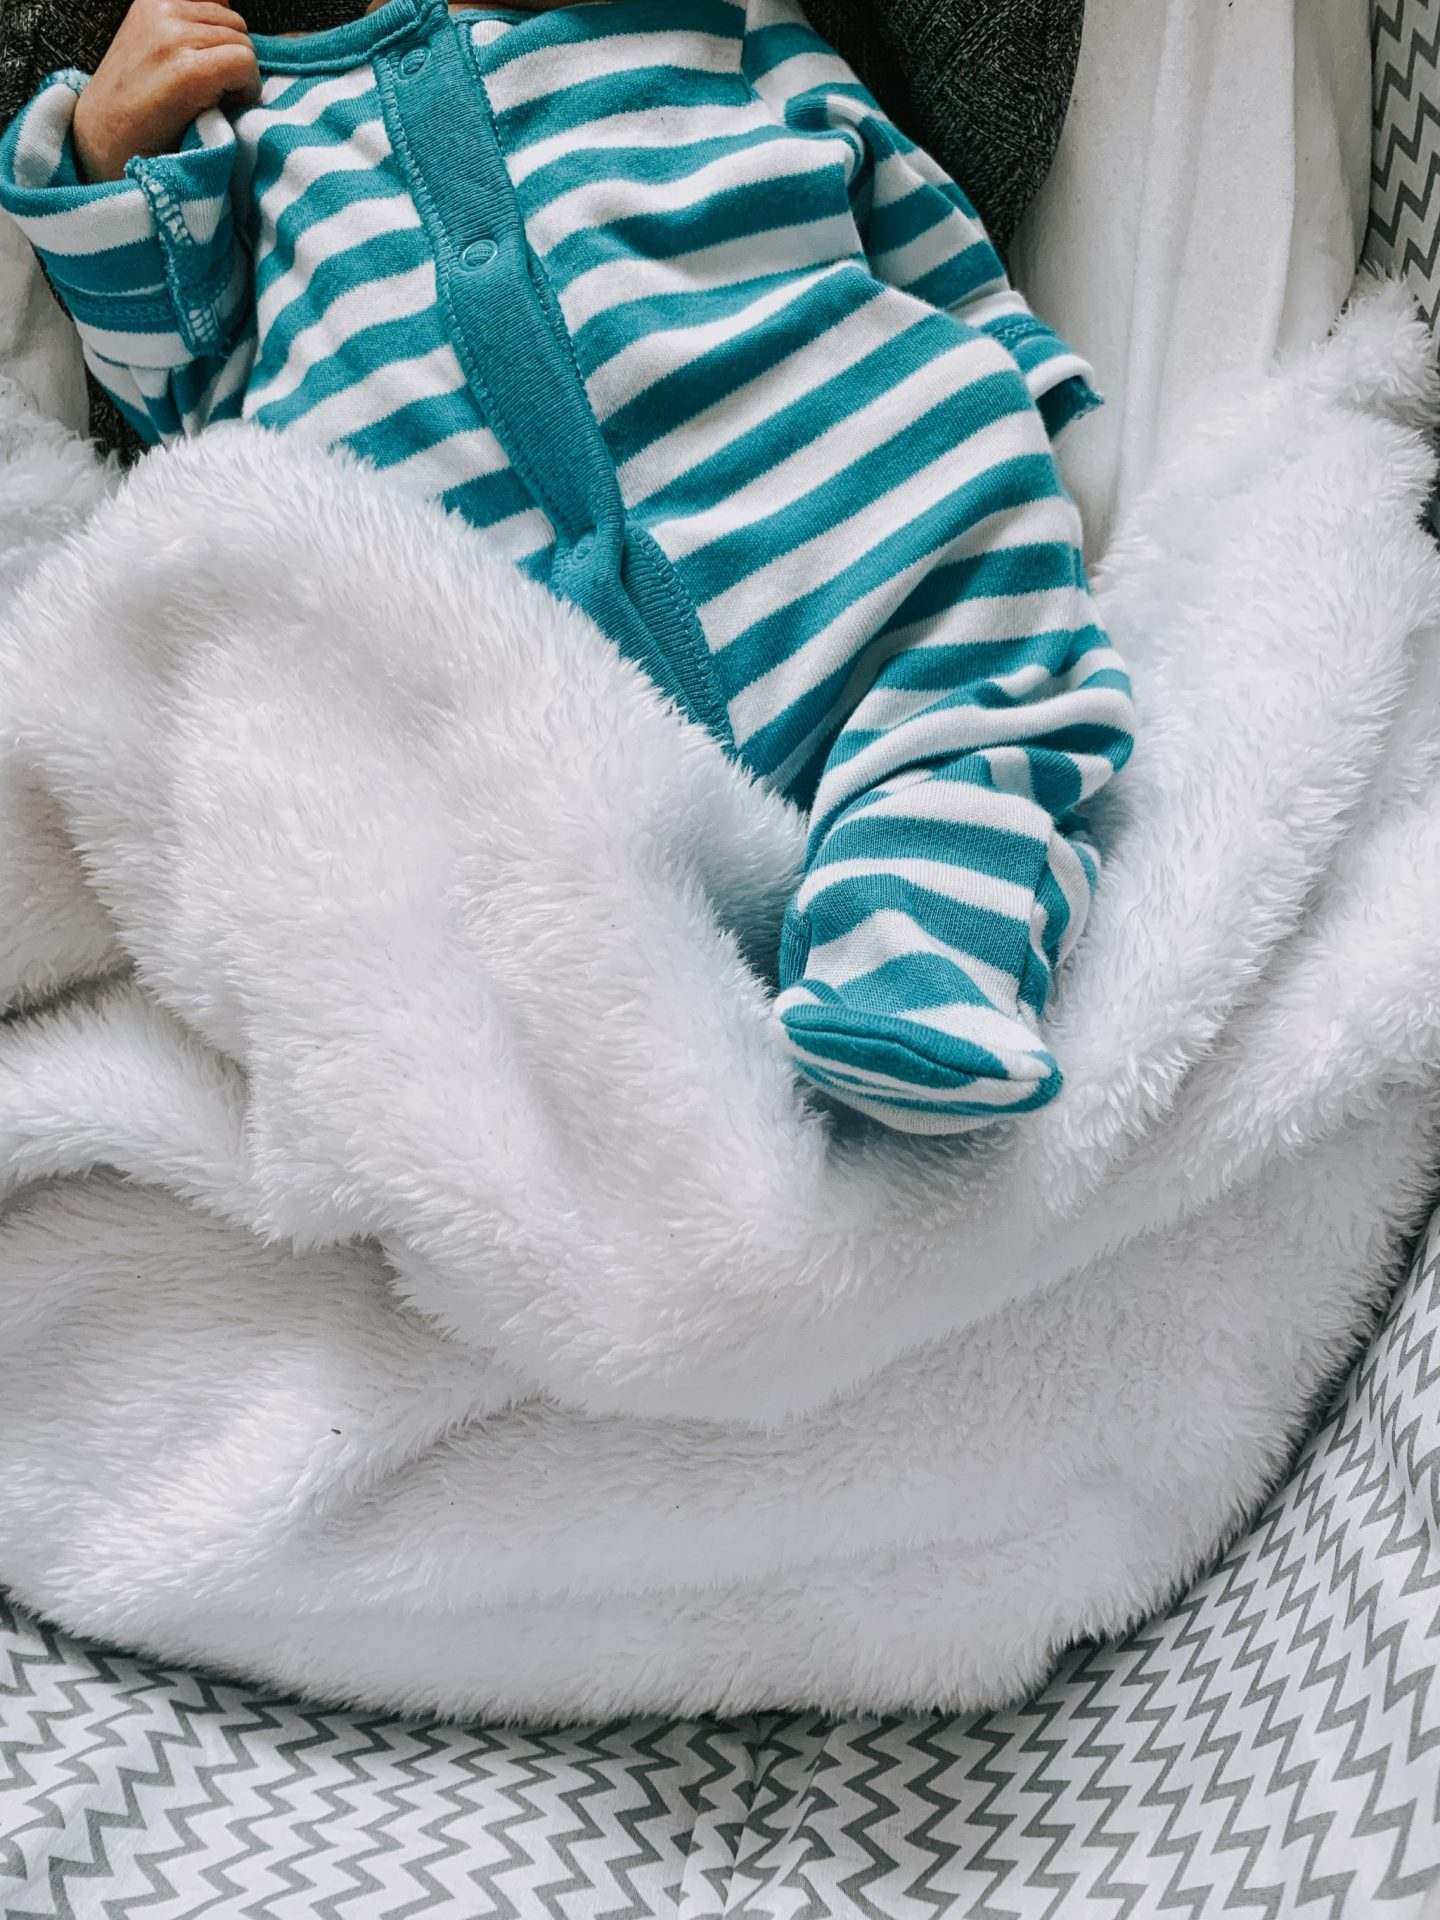 20 Things They Don't Tell You About Motherhood - baby in basket wearing striped sleep suit